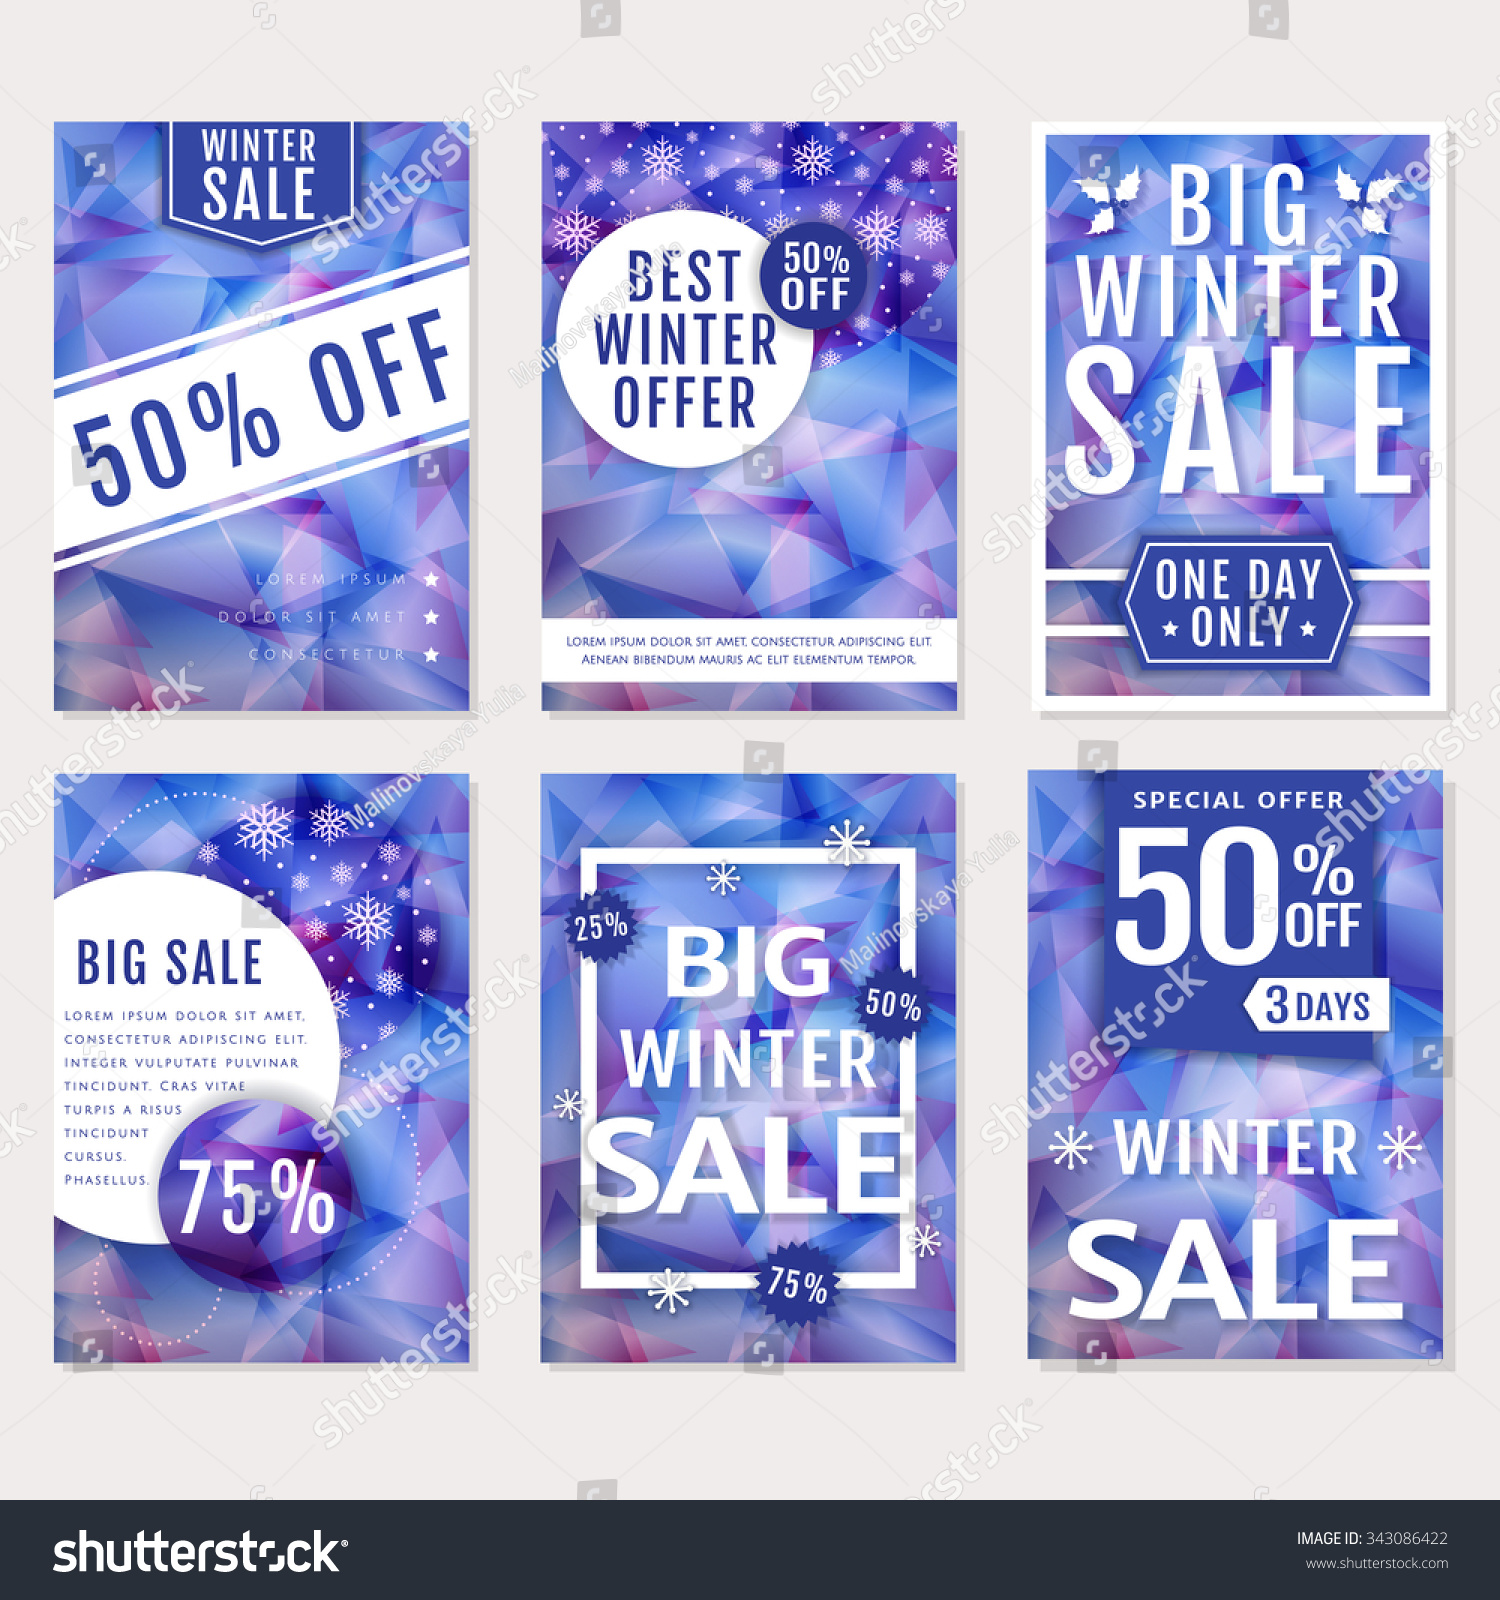 winter s discounts set seasonal advertising stock vector winter s and discounts set of seasonal advertising banners flyers or posters templates